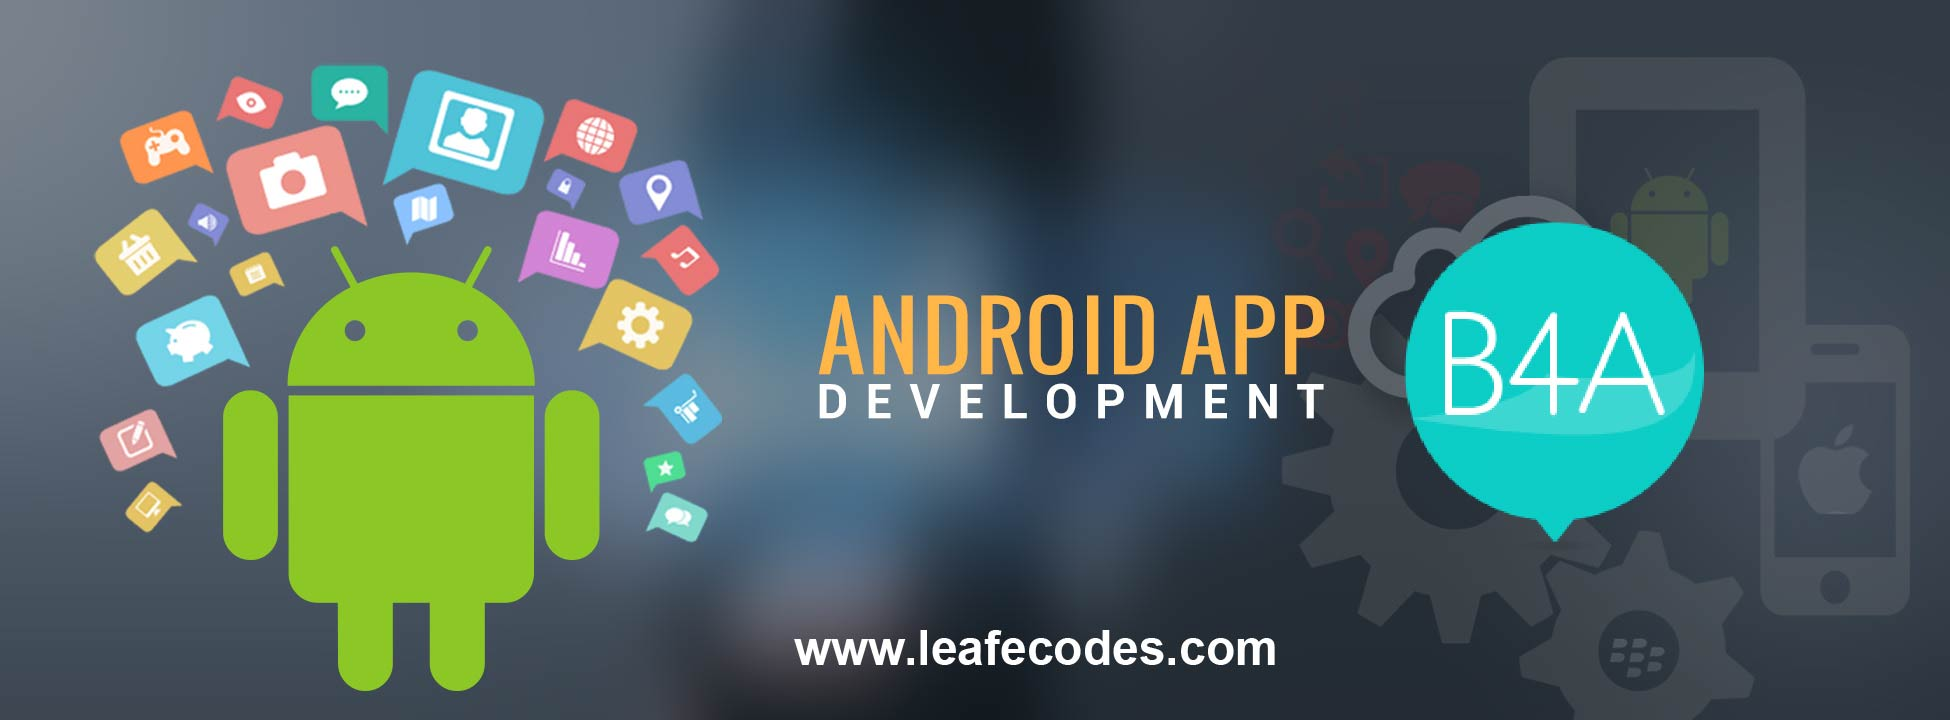 Install B4A for android development the easy way - Leafecodes